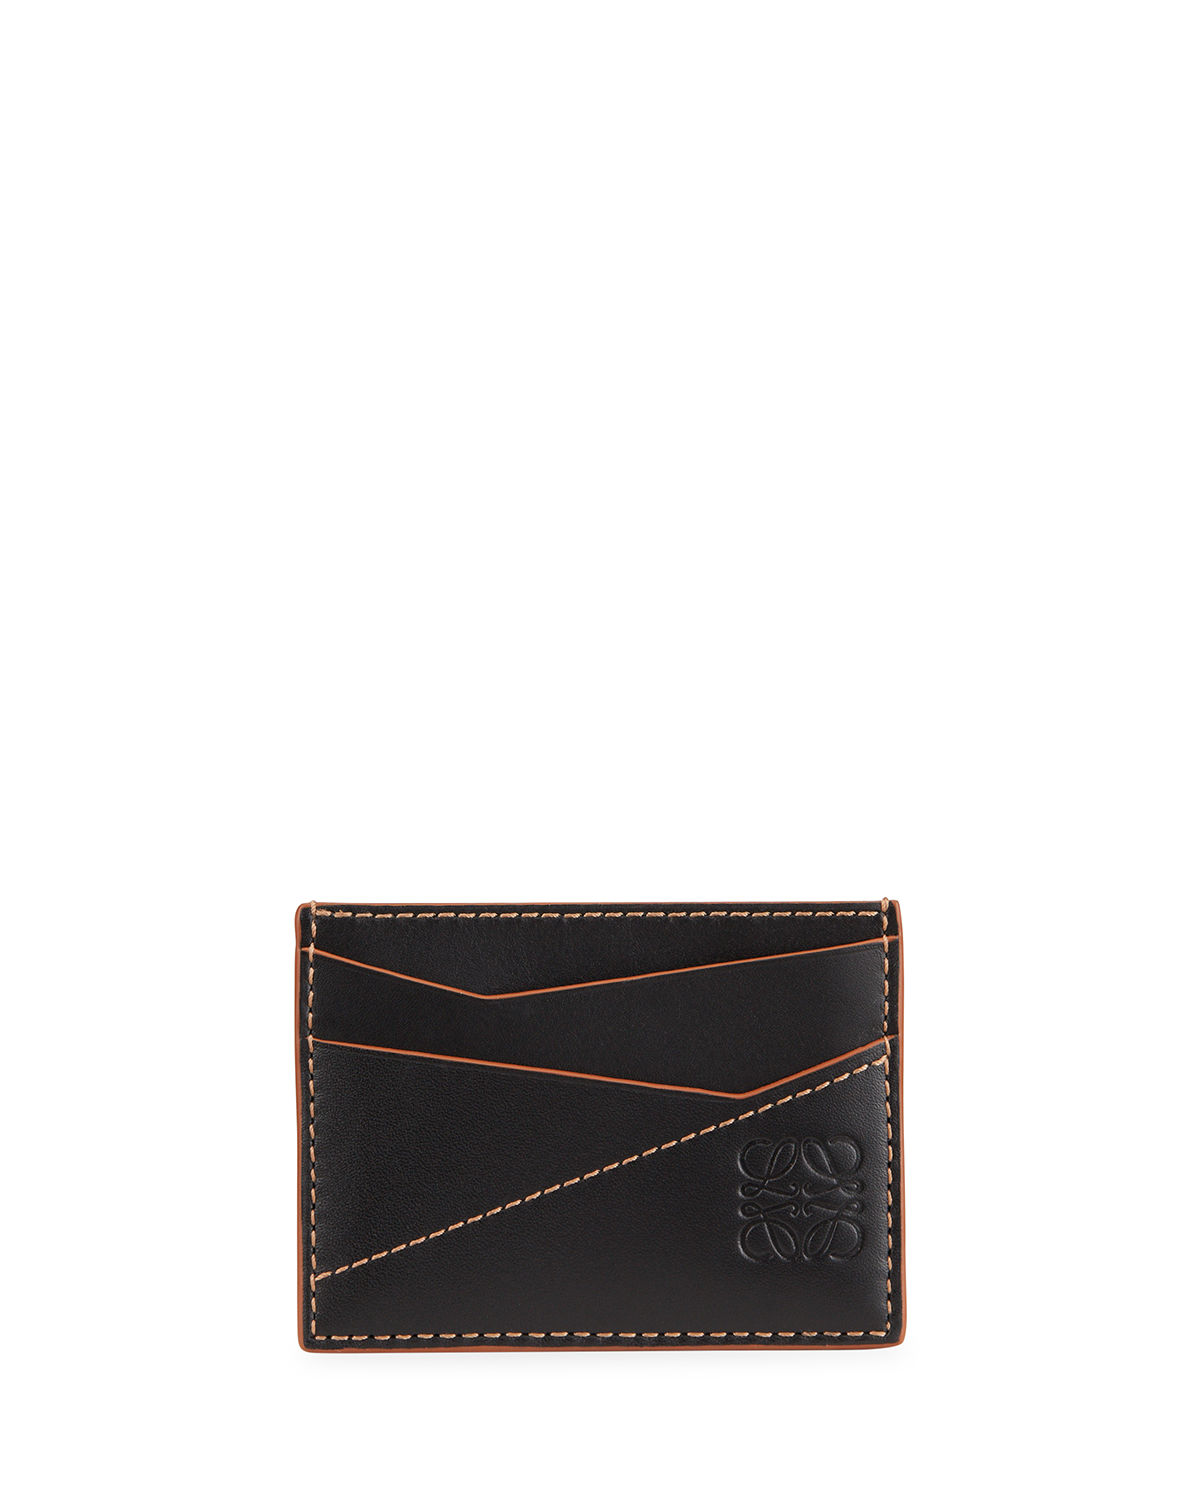 LOEWE MEN'S PUZZLE STITCHED LEATHER CARD CASE